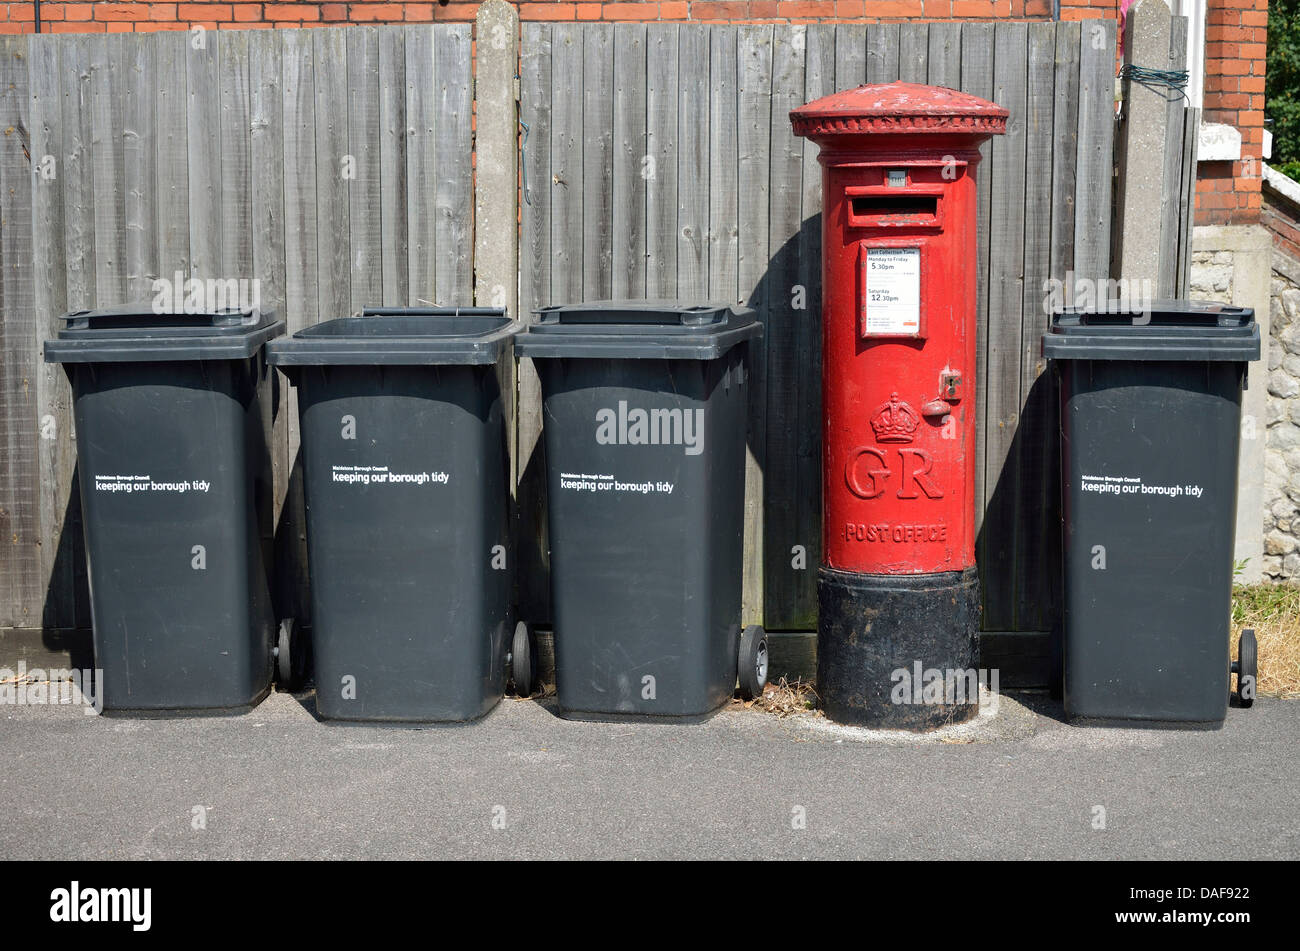 Maidstone, Kent, England. Row of household rubbish bins and red letterbox - Stock Image